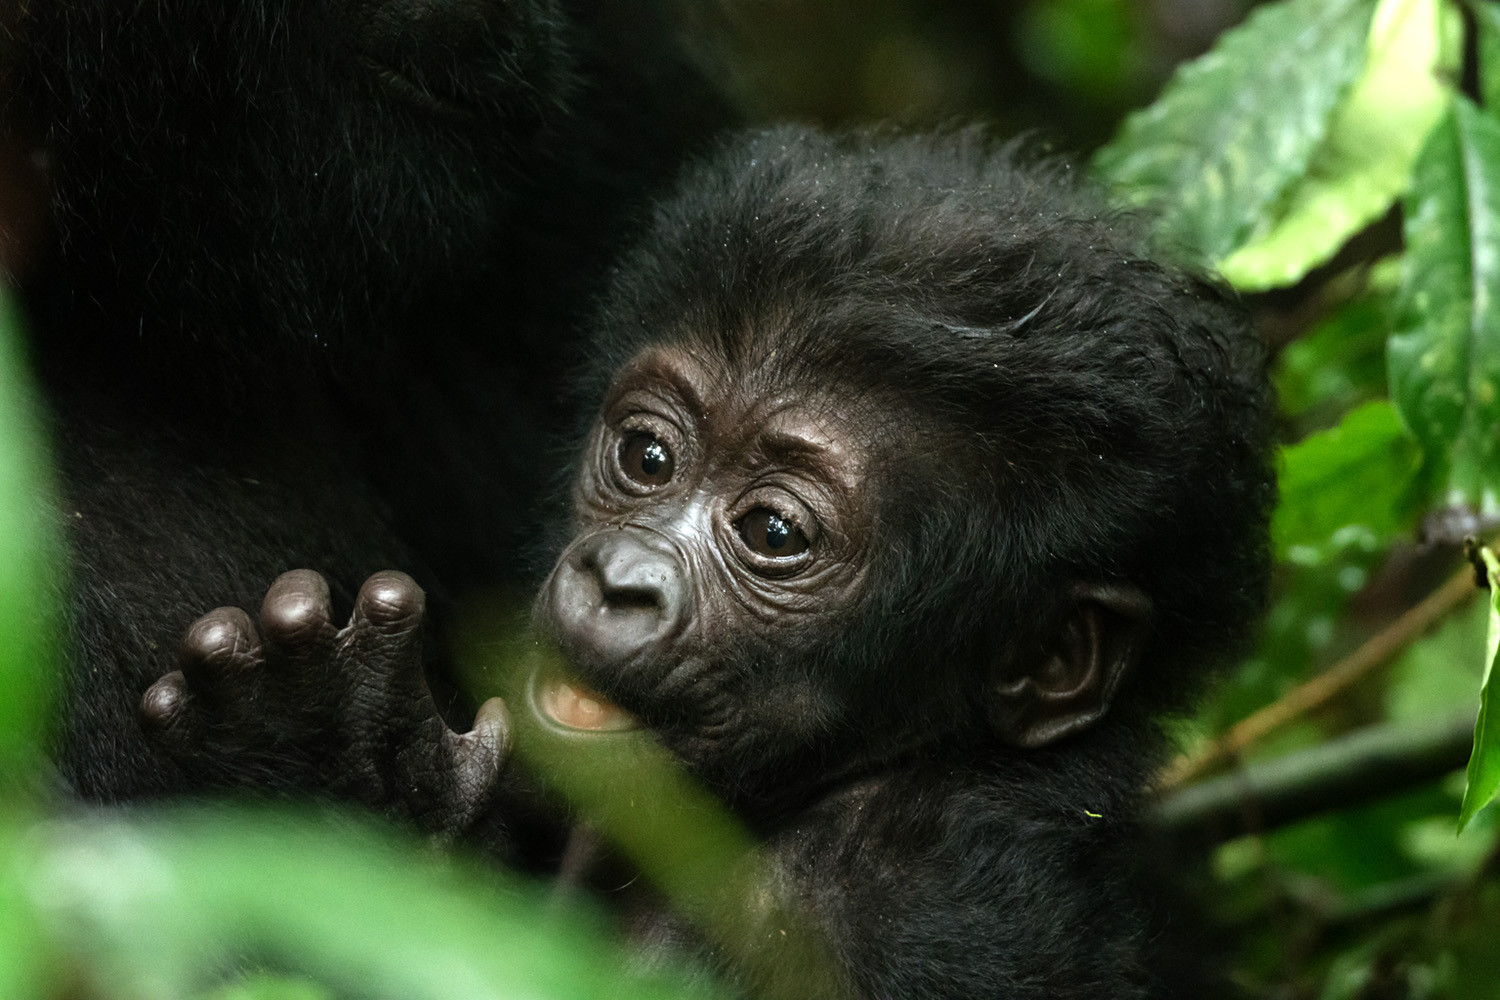 A program to save Uganda's chimps launched